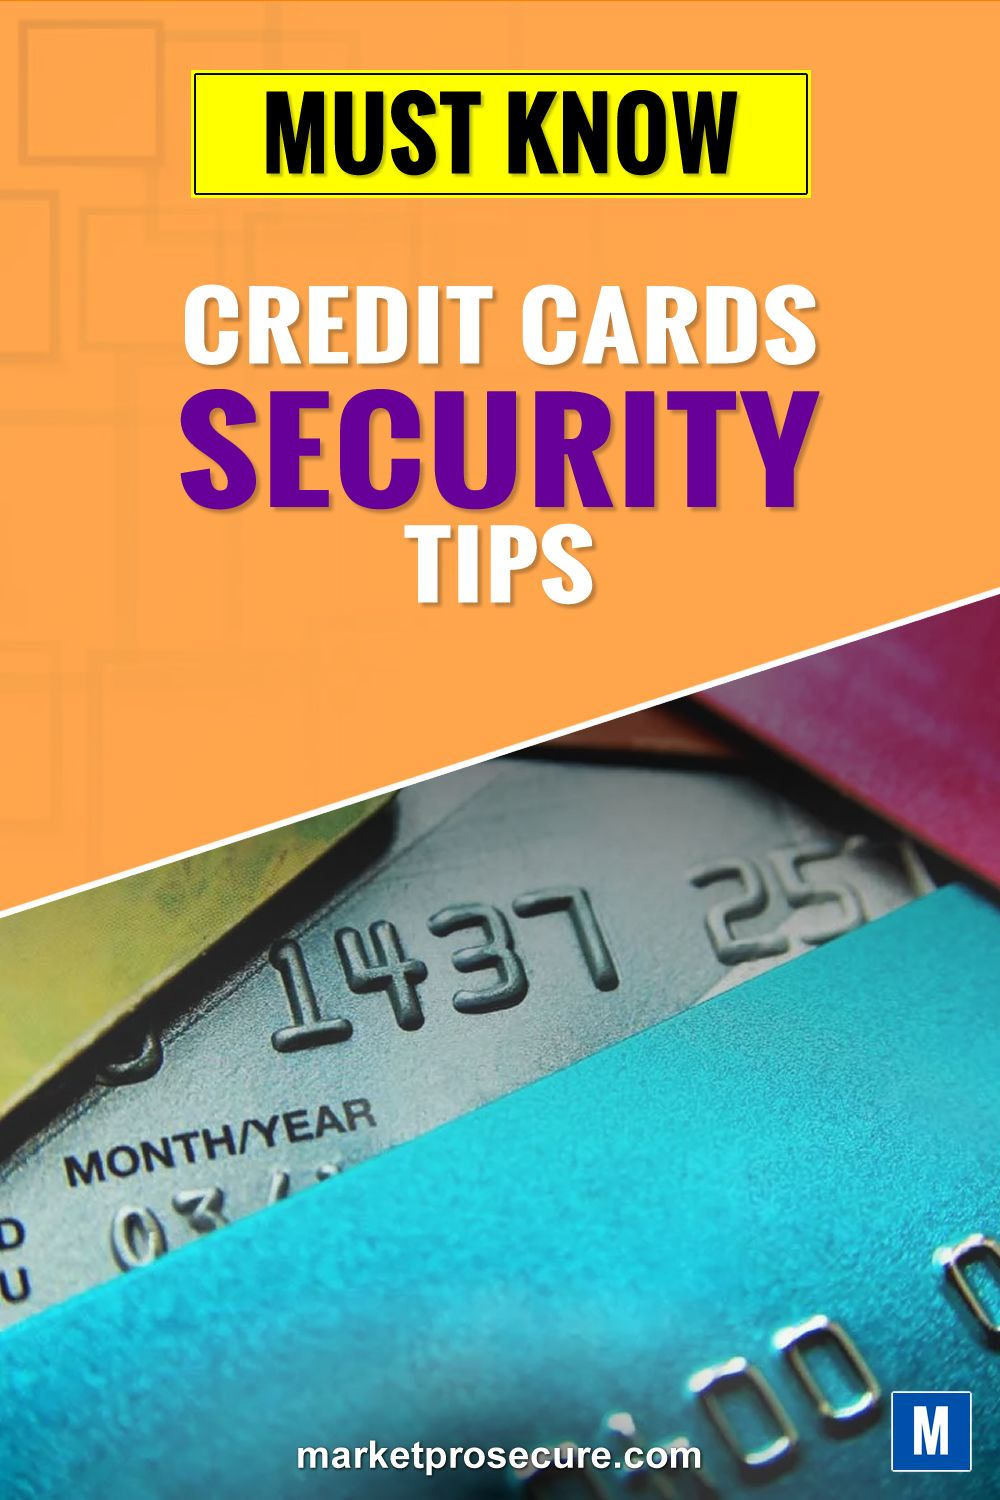 Credit Cards Security Tips in 2020 Security tips, Credit